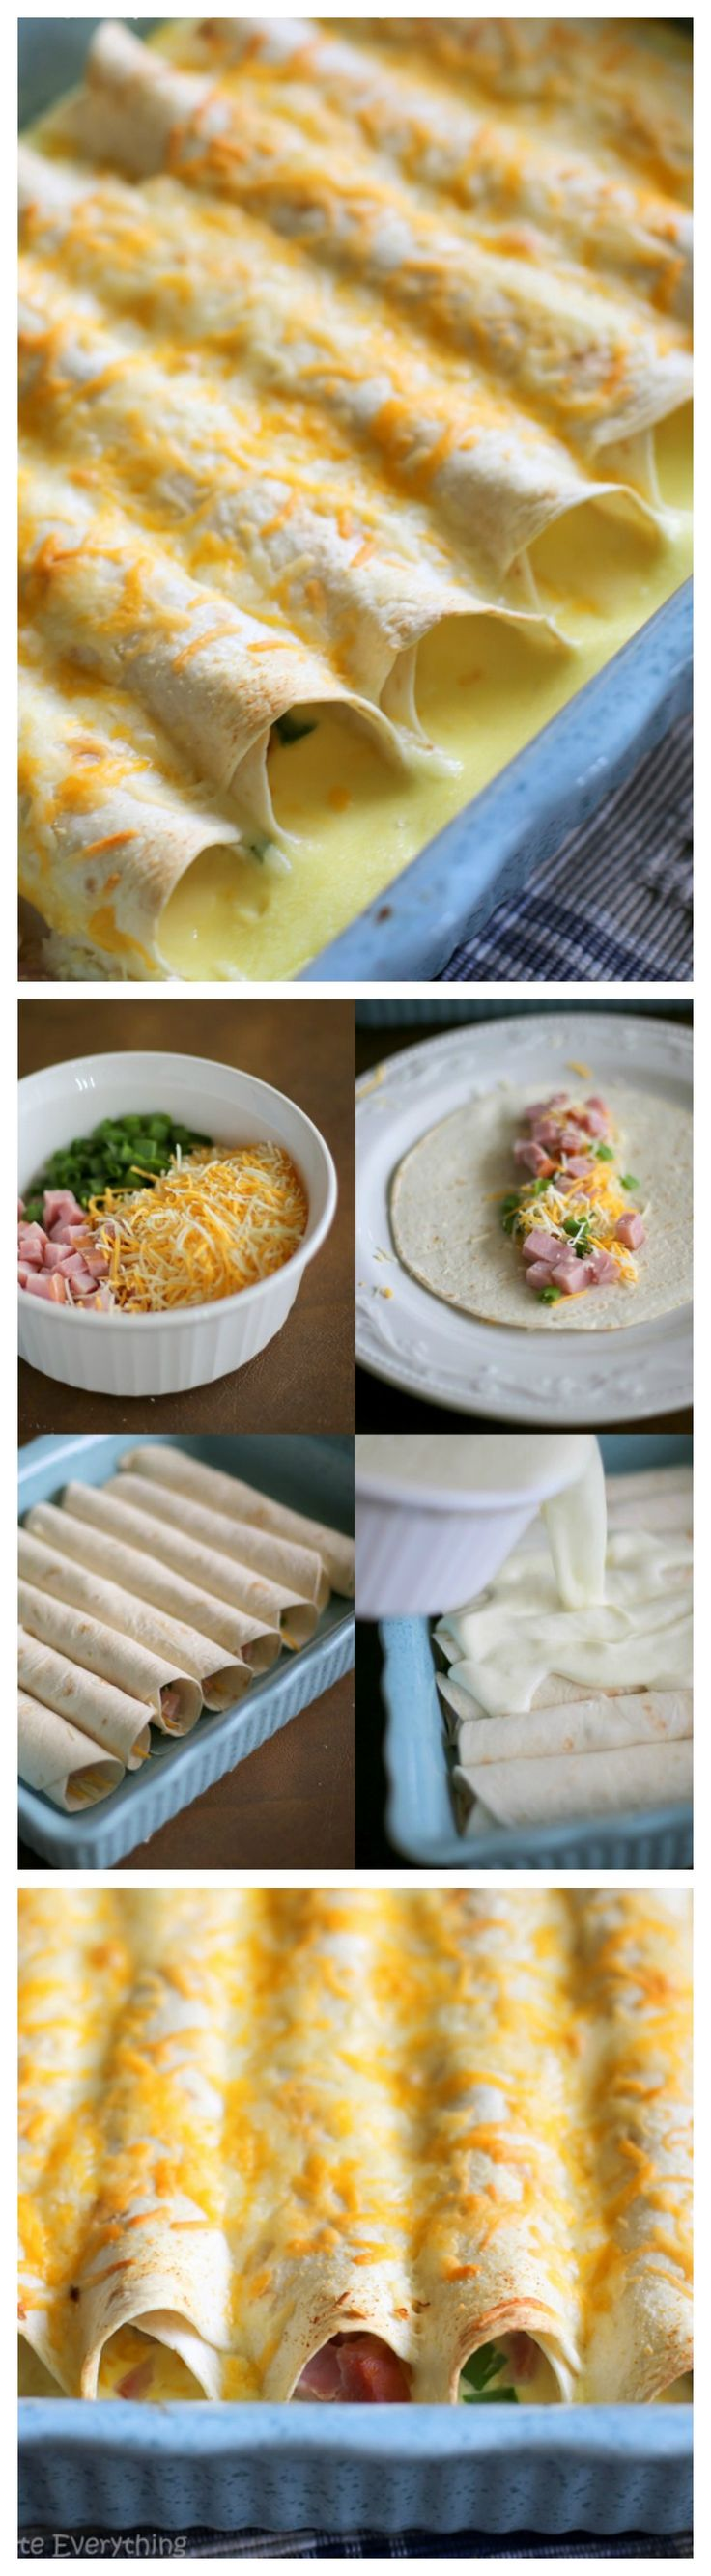 Ham and Cheese Breakfast Enchiladas - prepared the night before and filled with a ham and cheese egg mixture. Great for company!